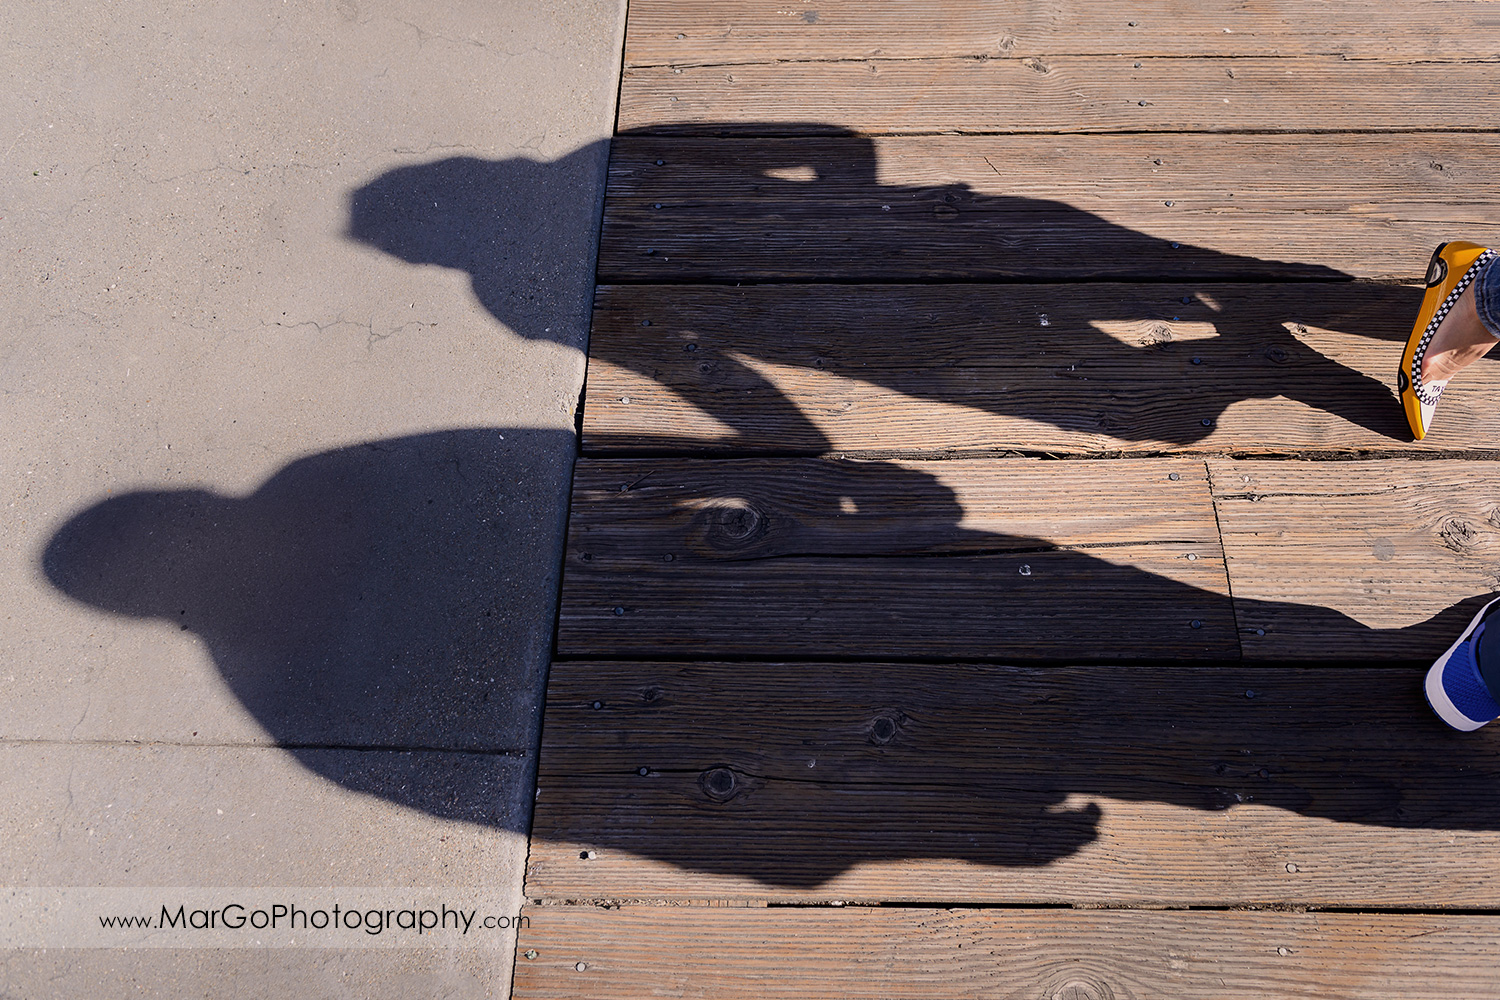 engagement session at Pier 1 in San Francisco - shoes and shadows